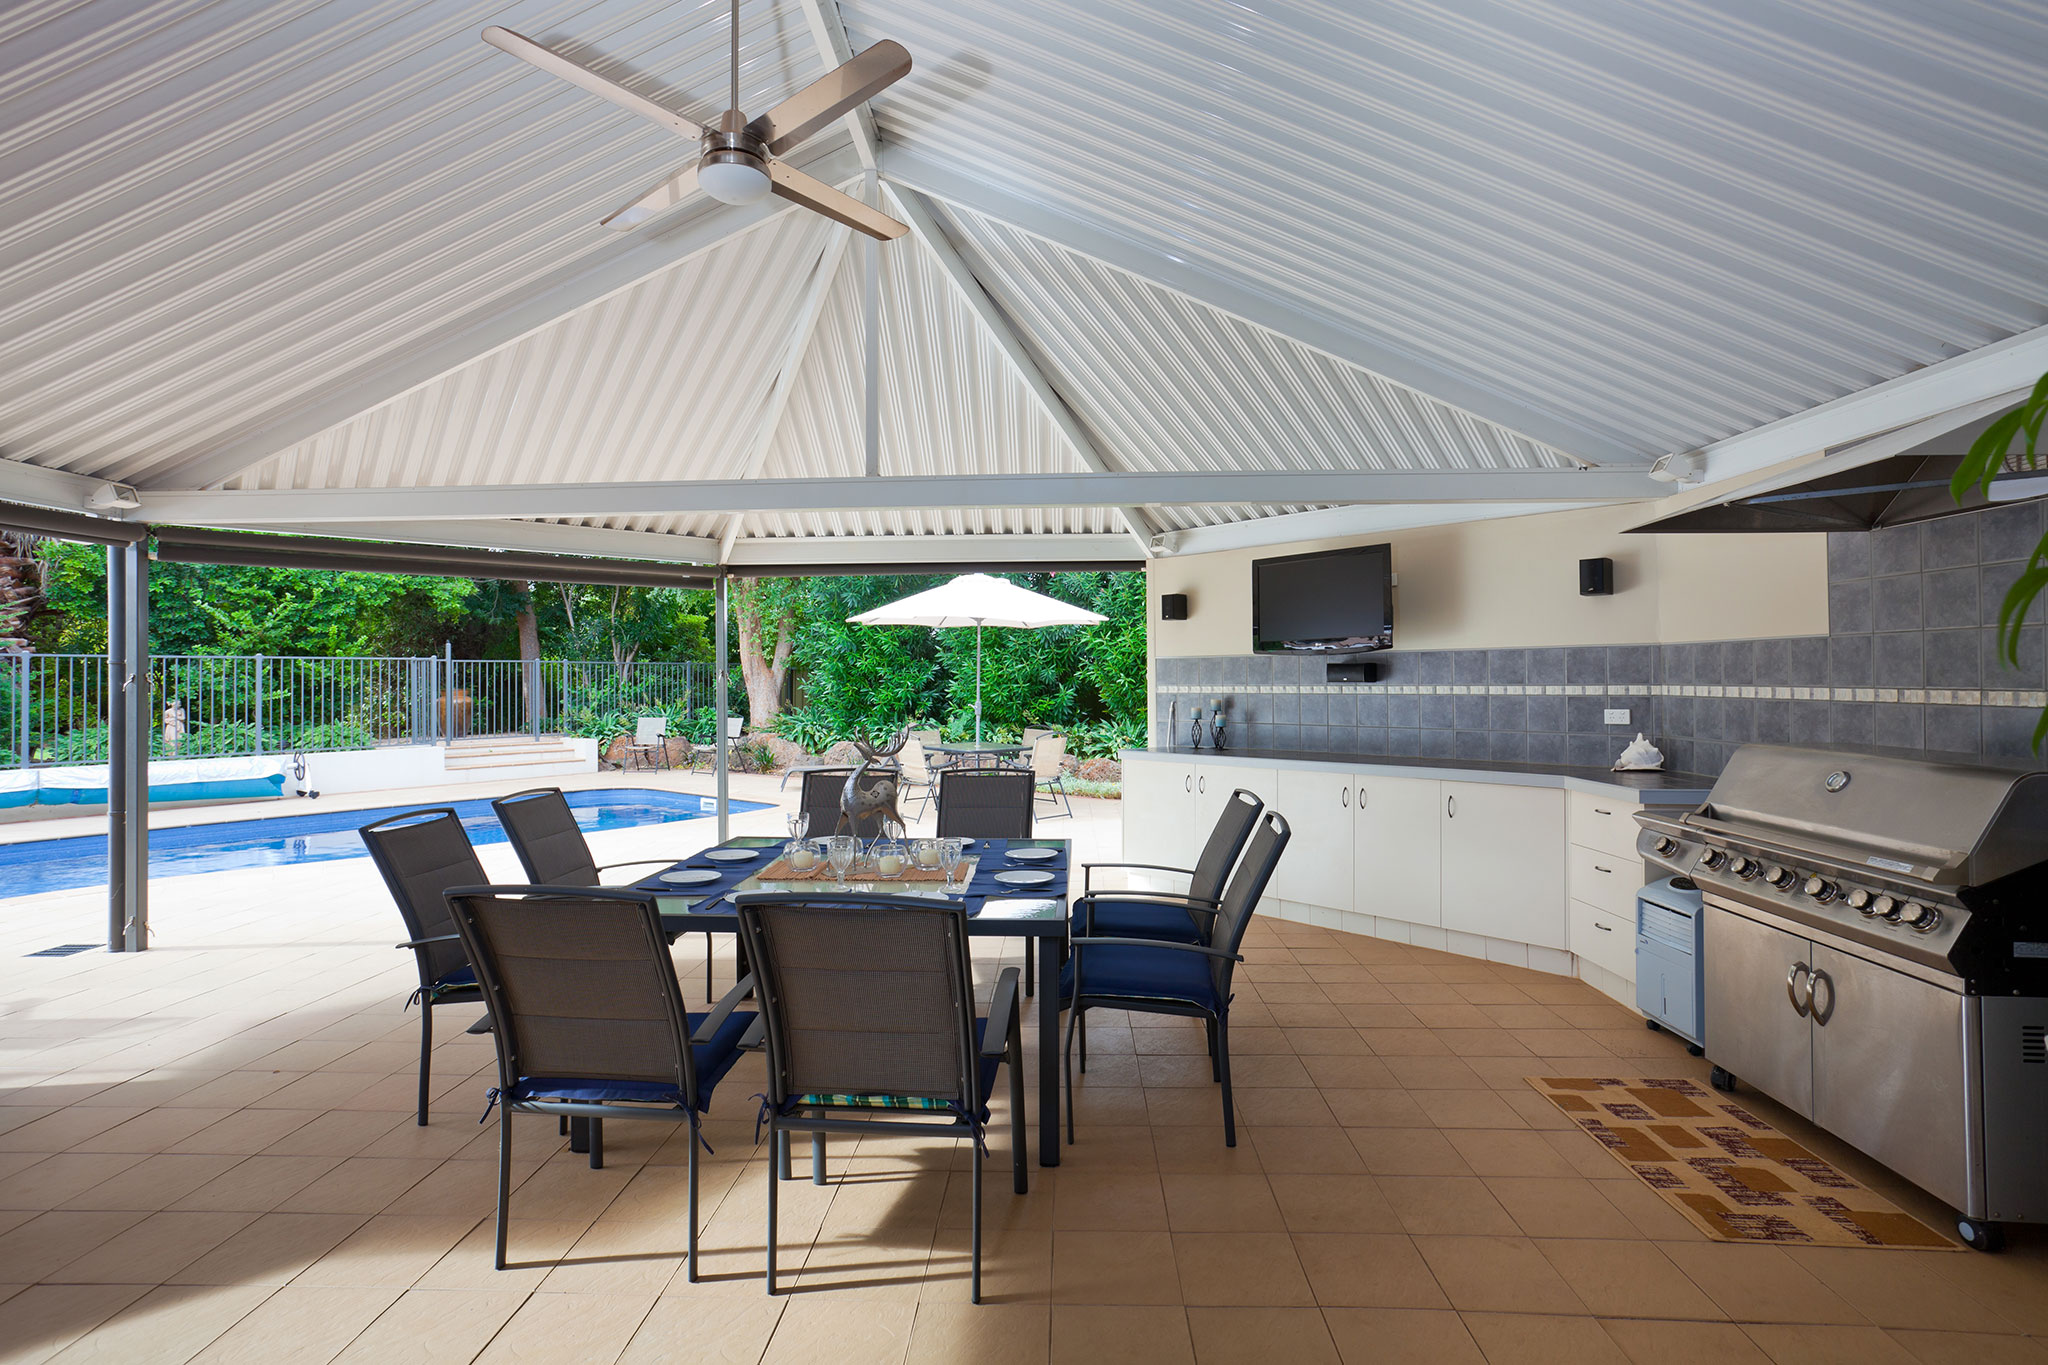 Easy BBQ ideas for your Backyard Patio